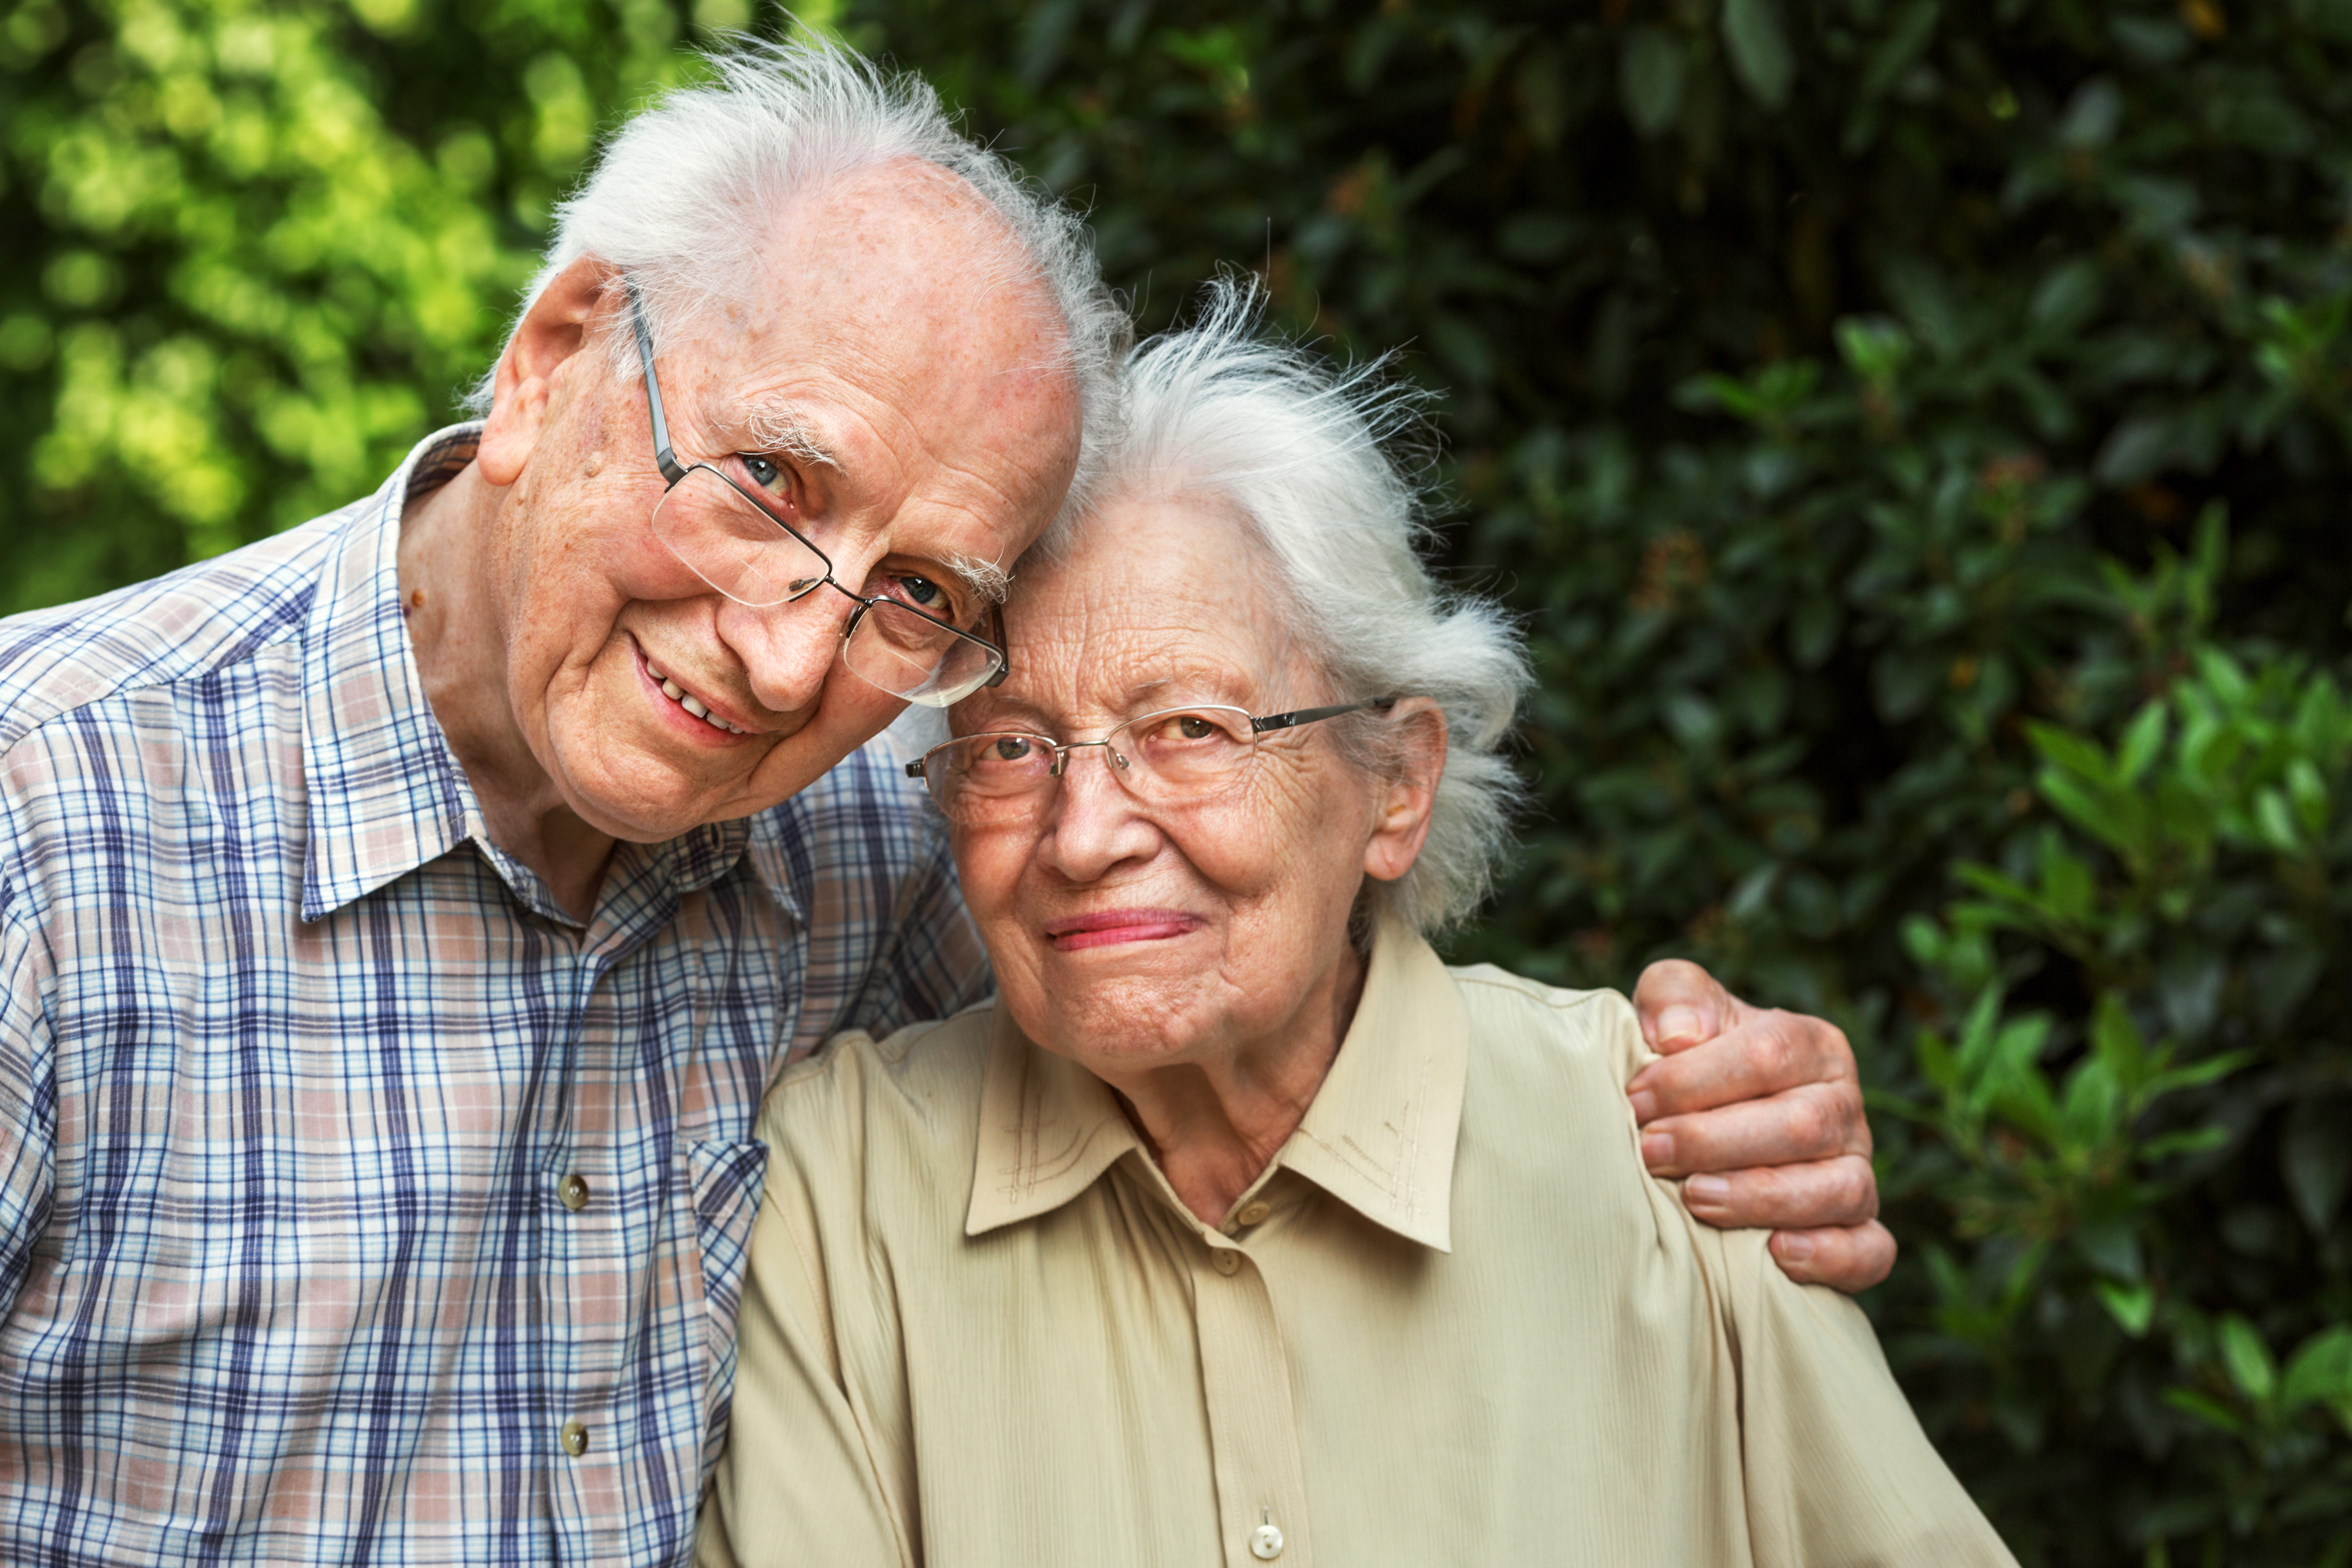 Consider Senior Home Care for Your Aging Family Member